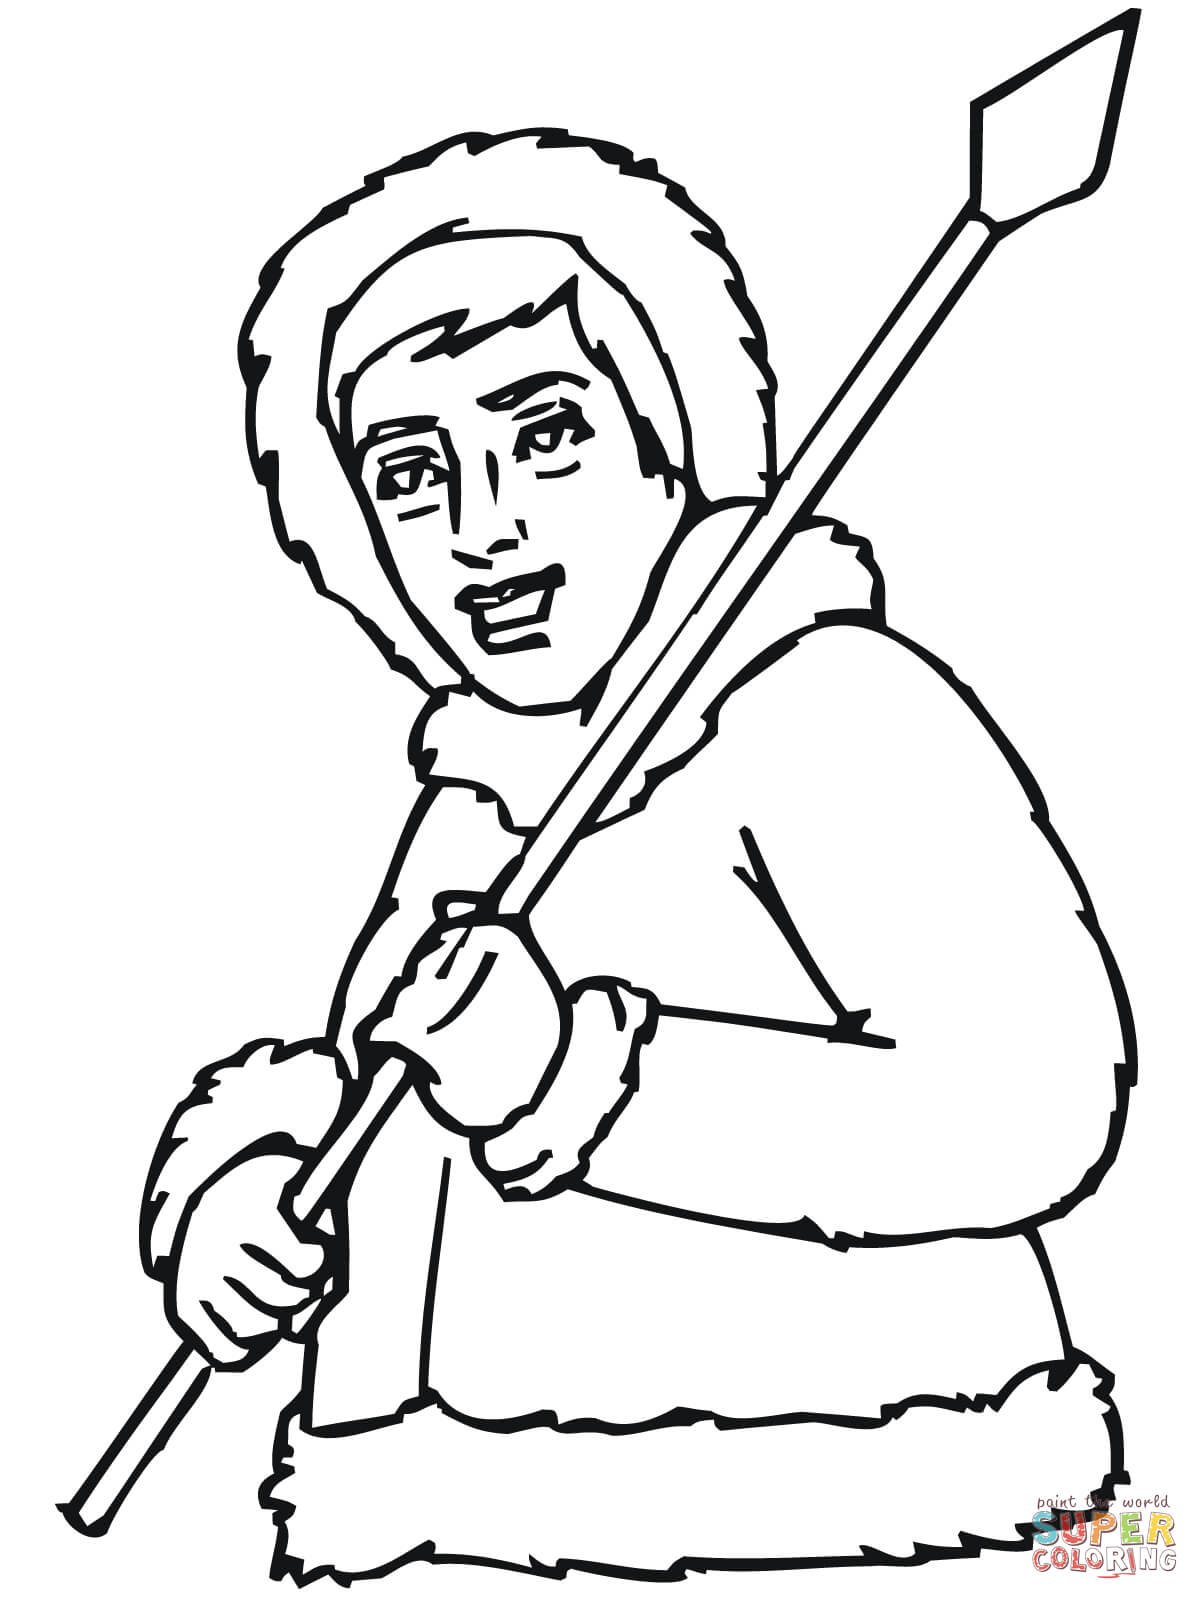 Inuit With Spear Coloring Page